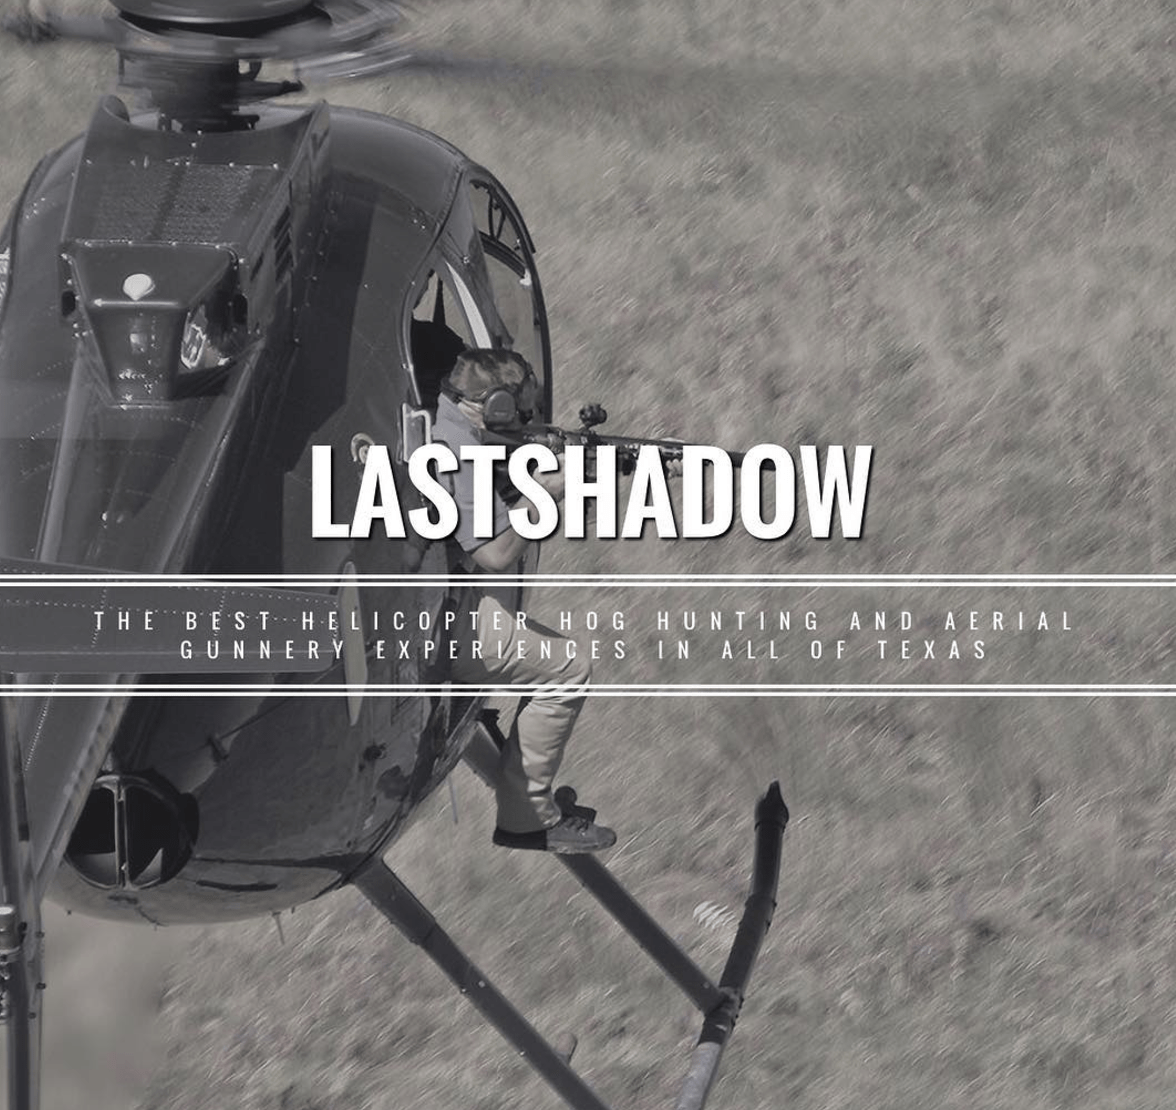 Last Shadow: Full Service Excursion